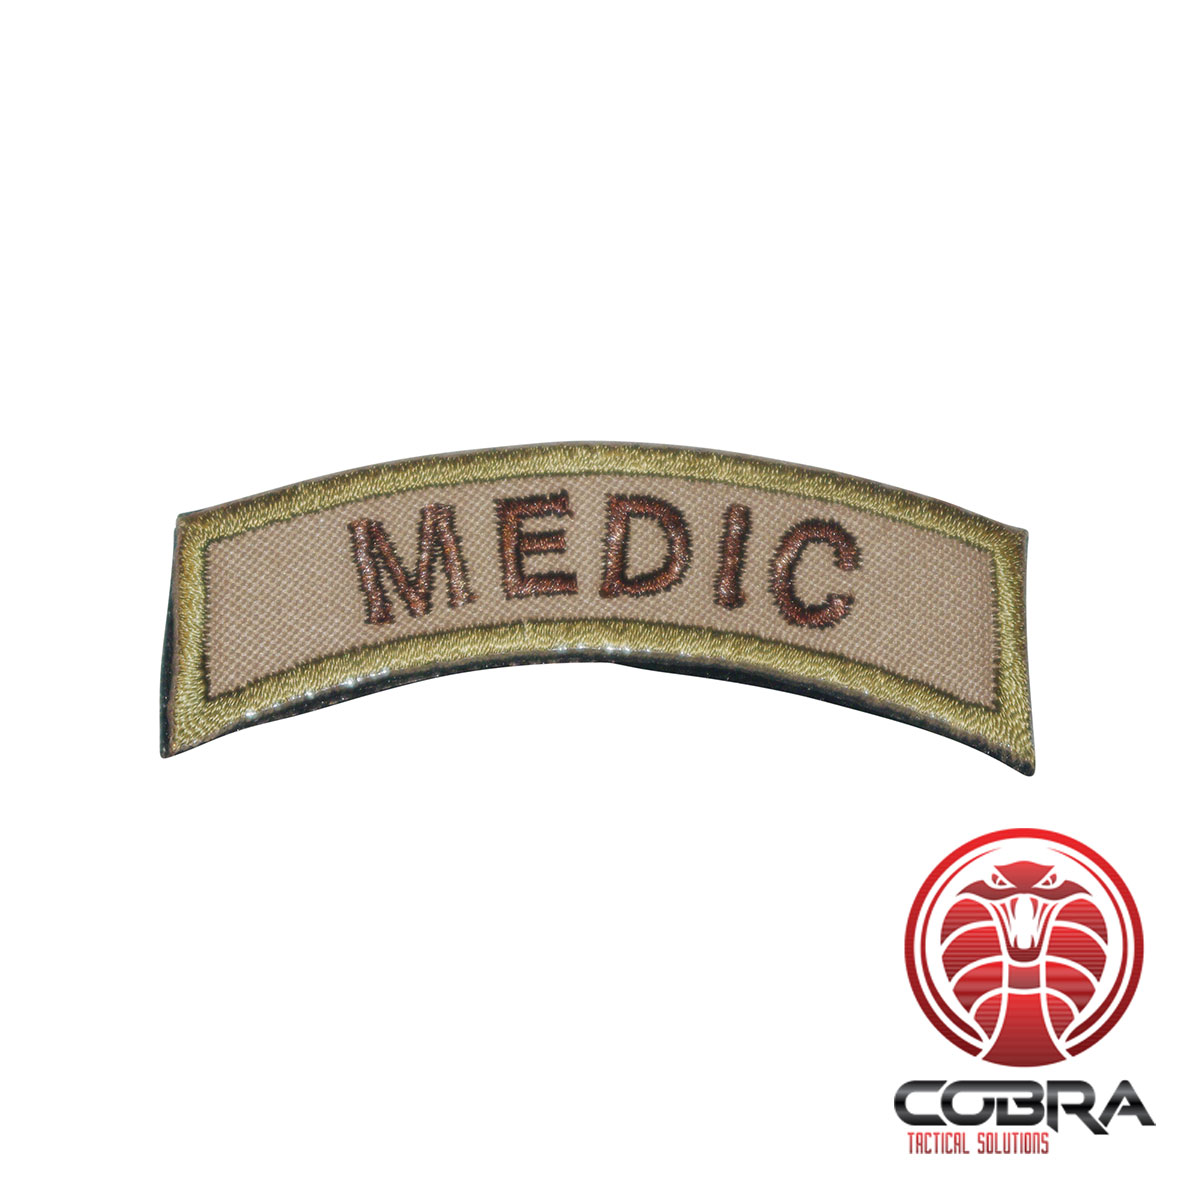 MEDIC military embroidered patch green/brown with velcro